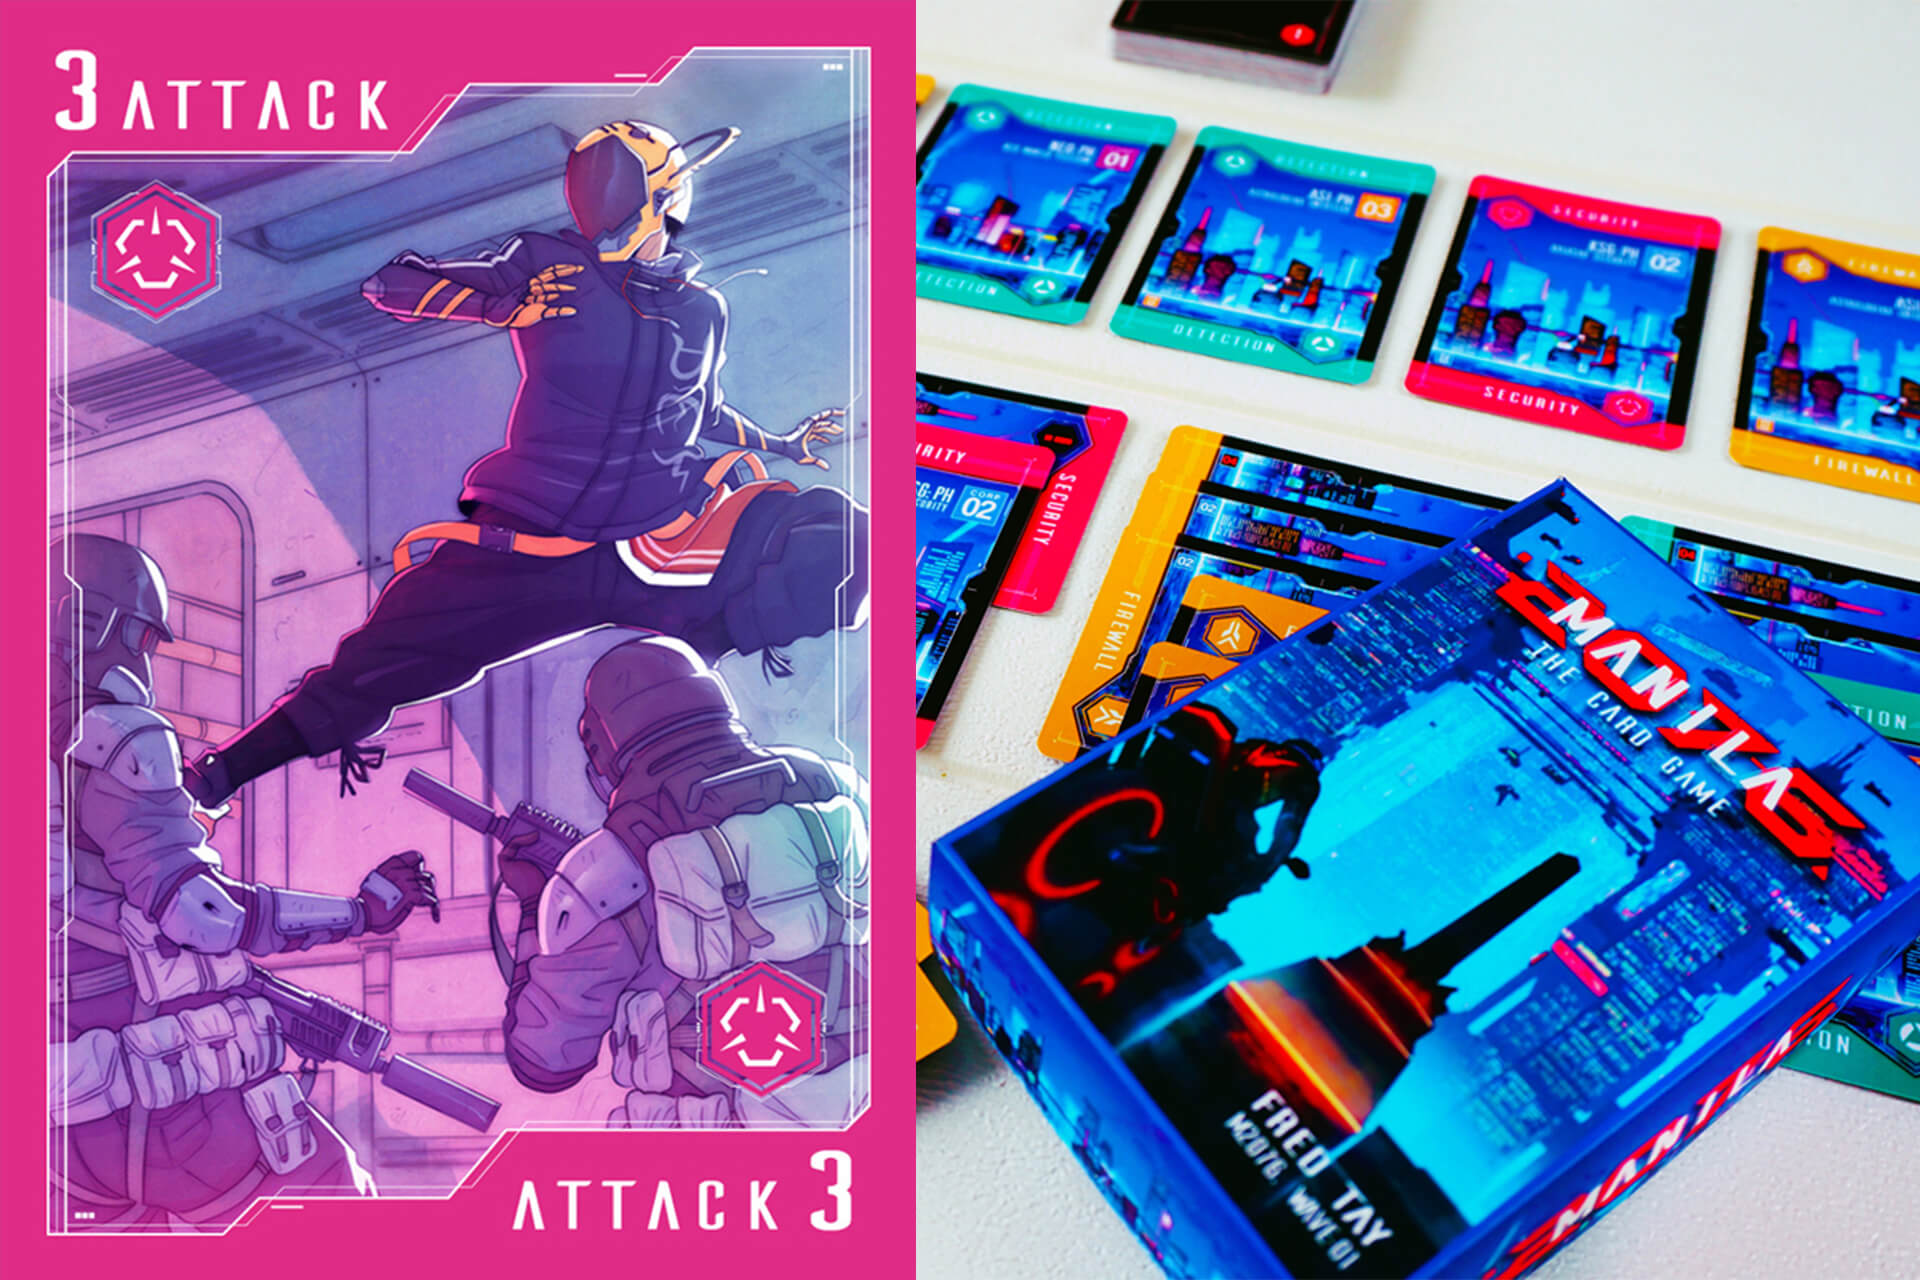 Manila goes cyberpunk in this locally made tabletop game